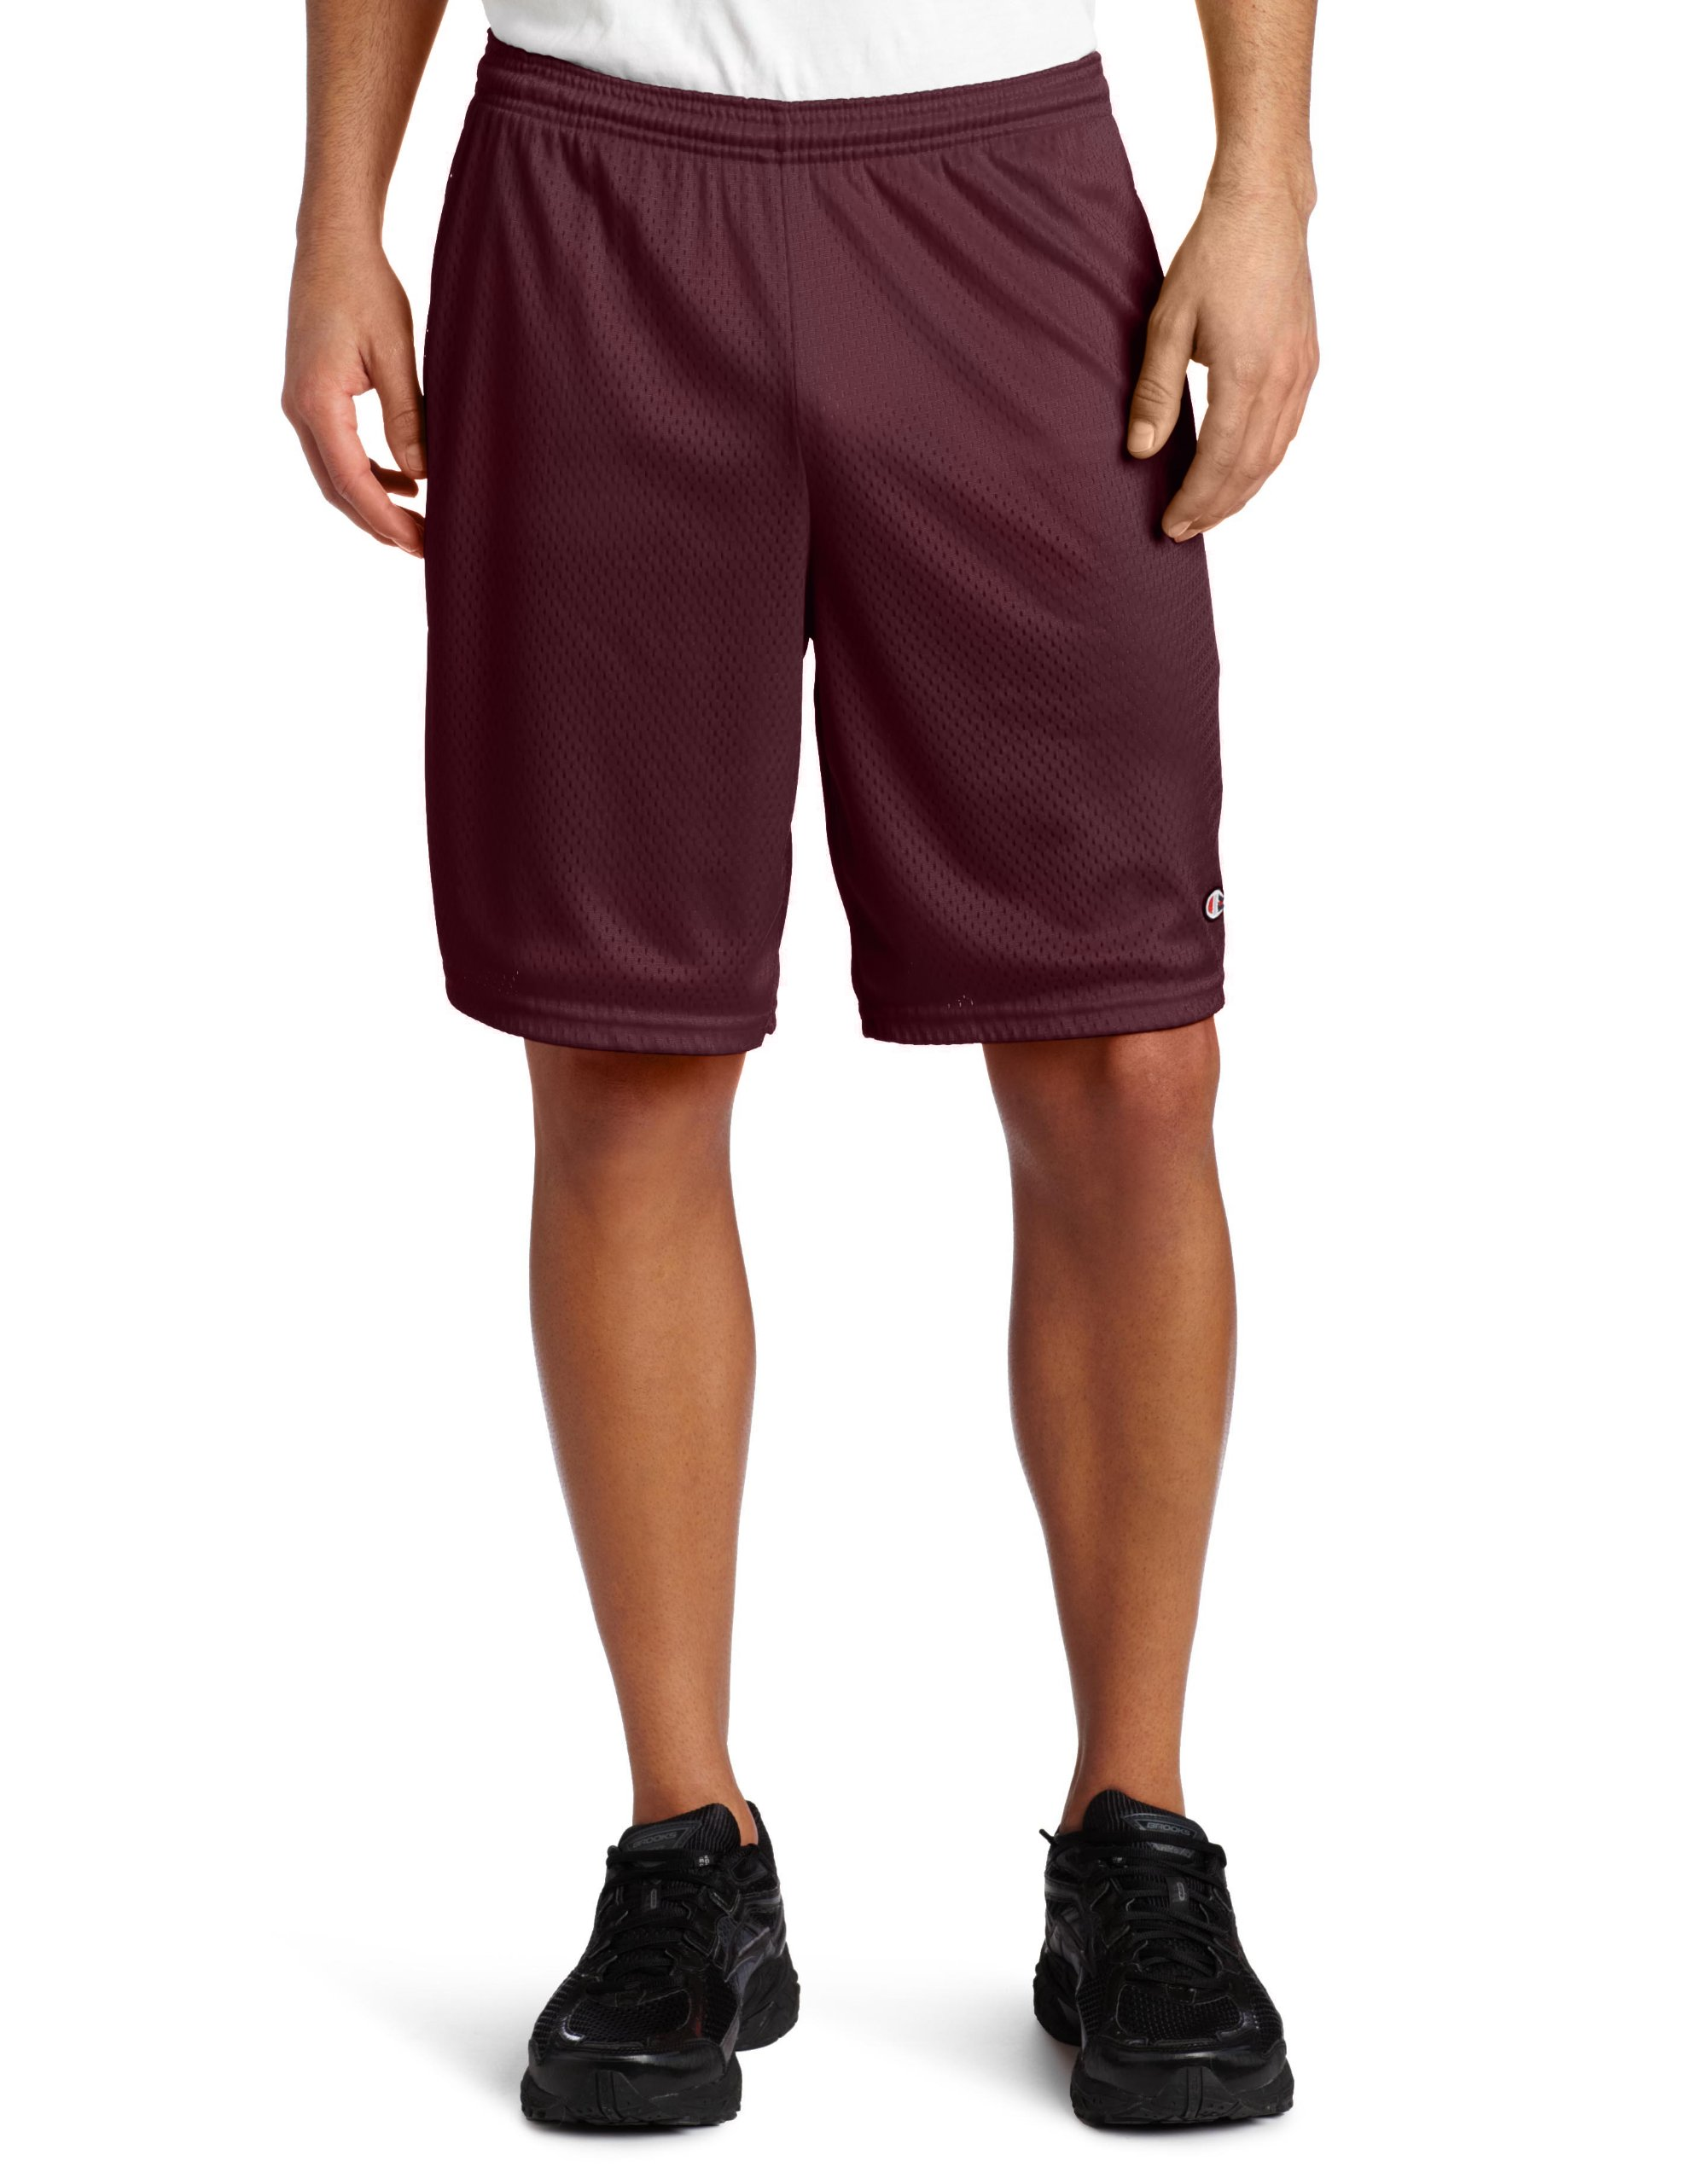 Champion Men's Long Mesh Short with Pockets,Maroon,XX-Large by Champion